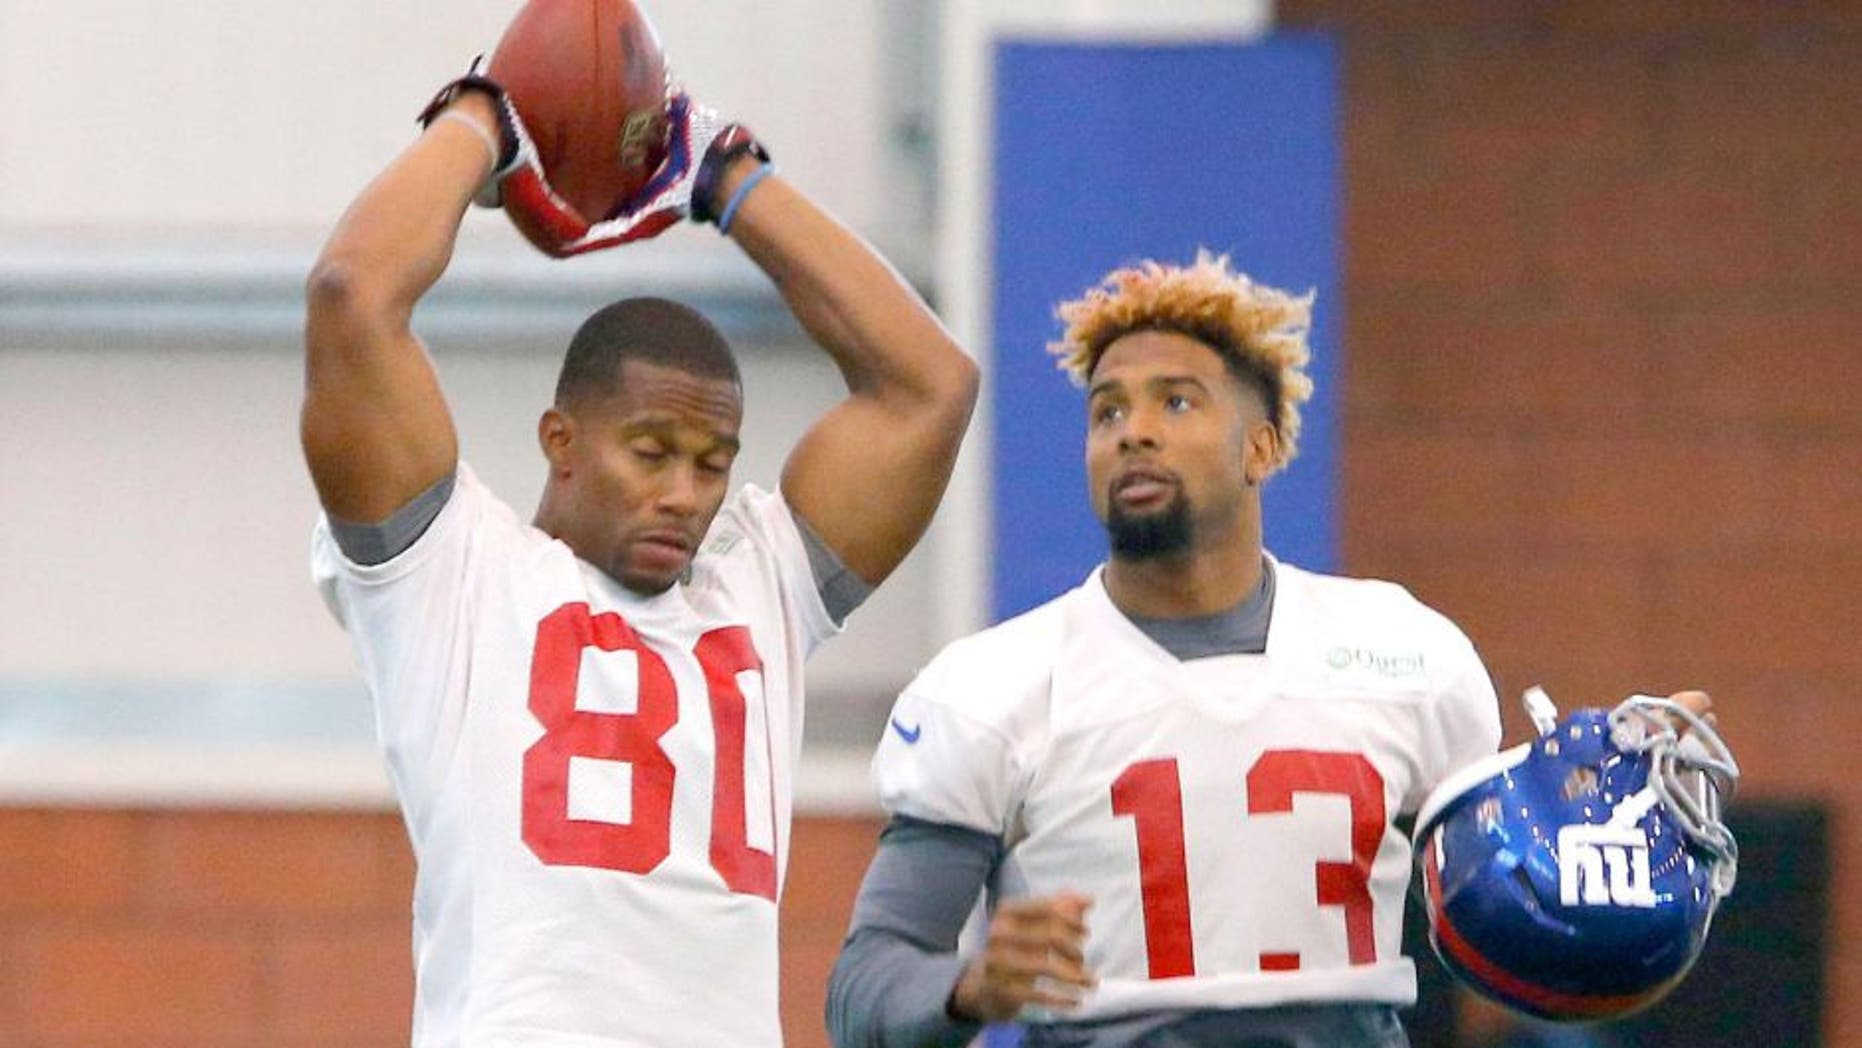 Jun 8, 2015; East Rutherford, NJ, USA; New York Giants wide receiver Victor Cruz (80) and New York Giants wide receiver Odell Beckham (13) during organized team activities at Quest Diagnostics Training Center. Mandatory Credit: Noah K. Murray-USA TODAY